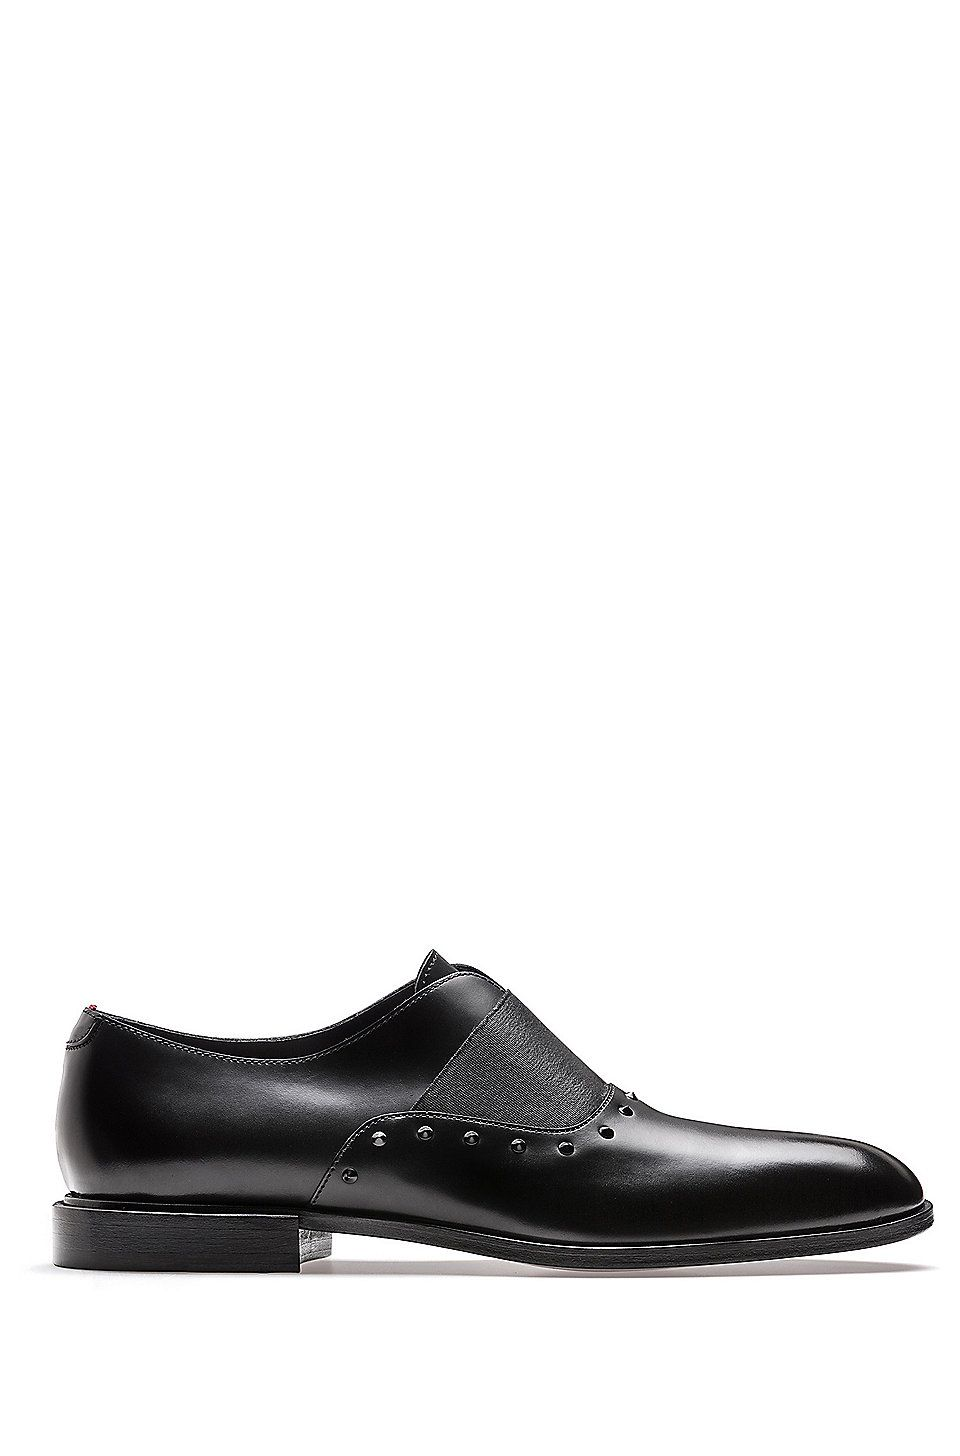 Hugo Boss Slip On Leather Dress Shoes With Stud Detailing Black Casual Shoes From Hugo For Men In The Black Casual Shoes Leather Dress Shoes Dress Shoes Men [ 1456 x 960 Pixel ]